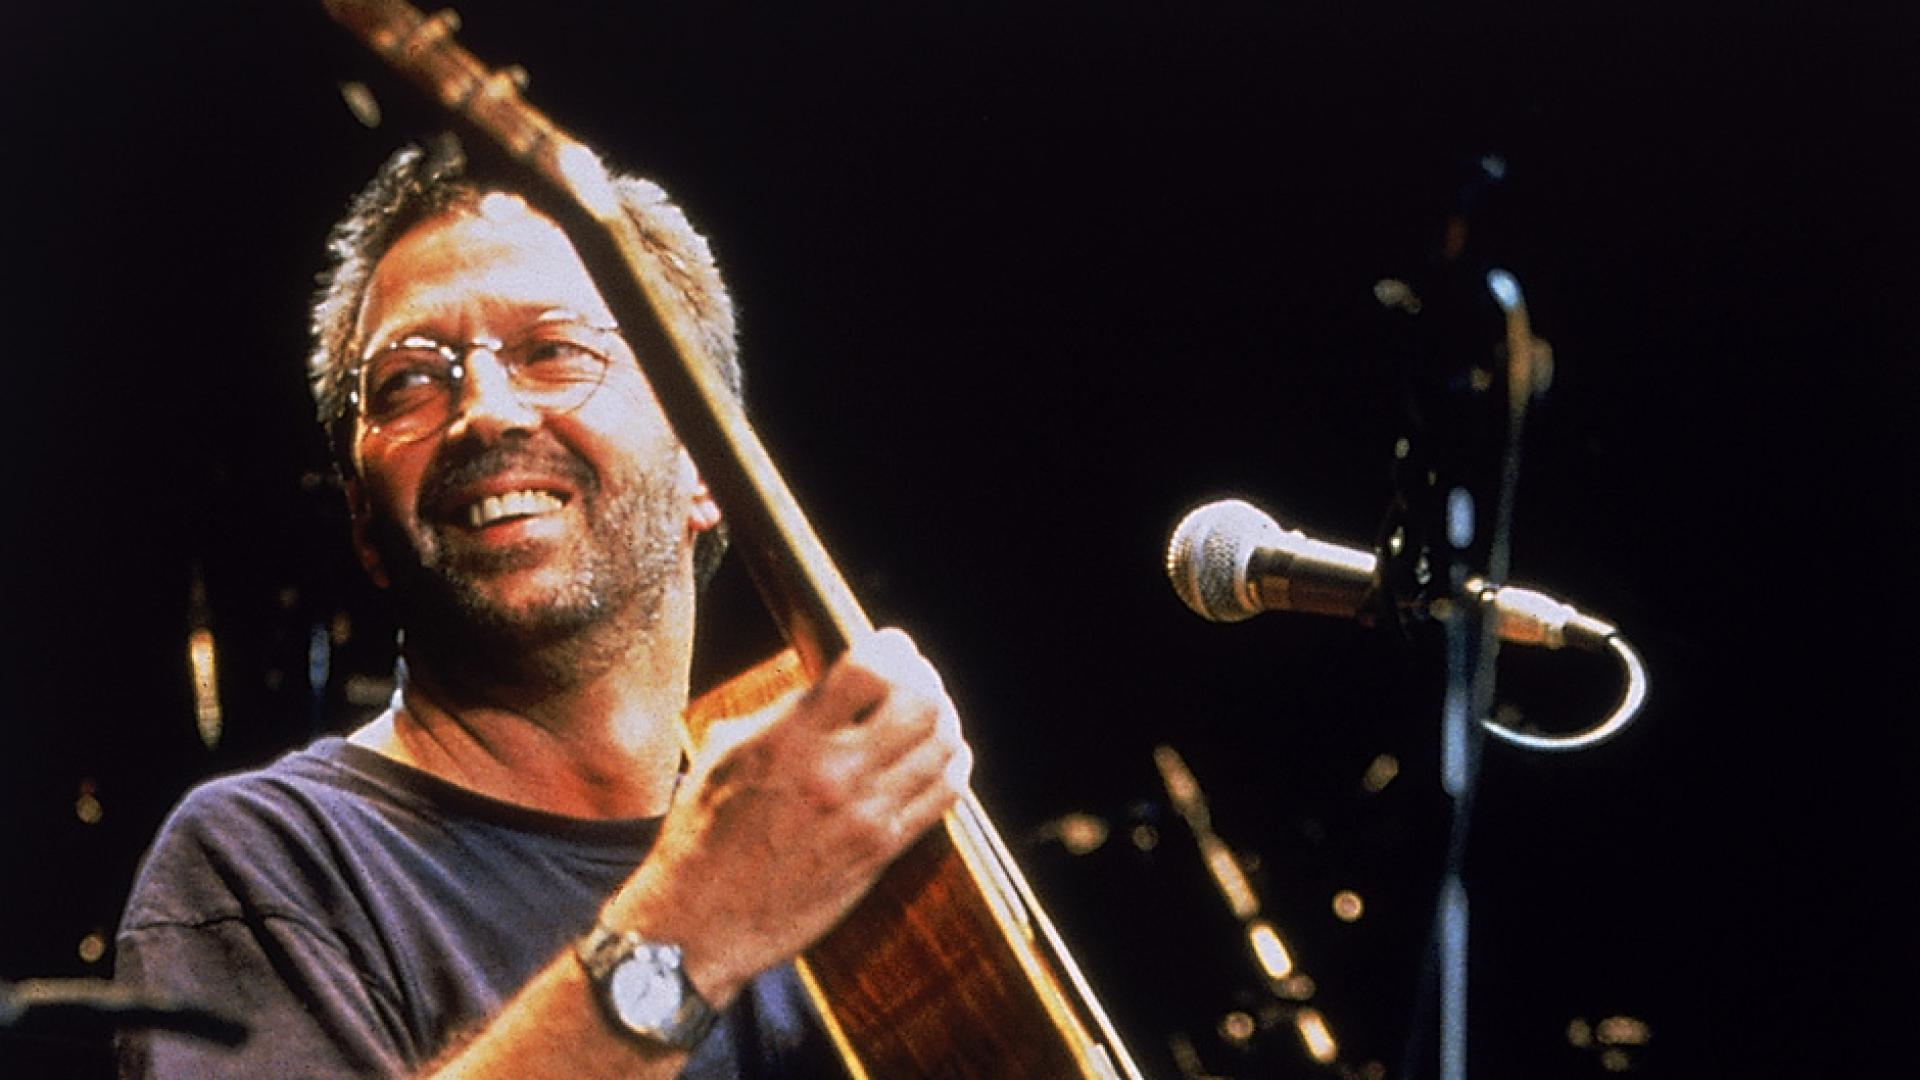 1920x1080-data_images-out-20-931630-eric-clapton